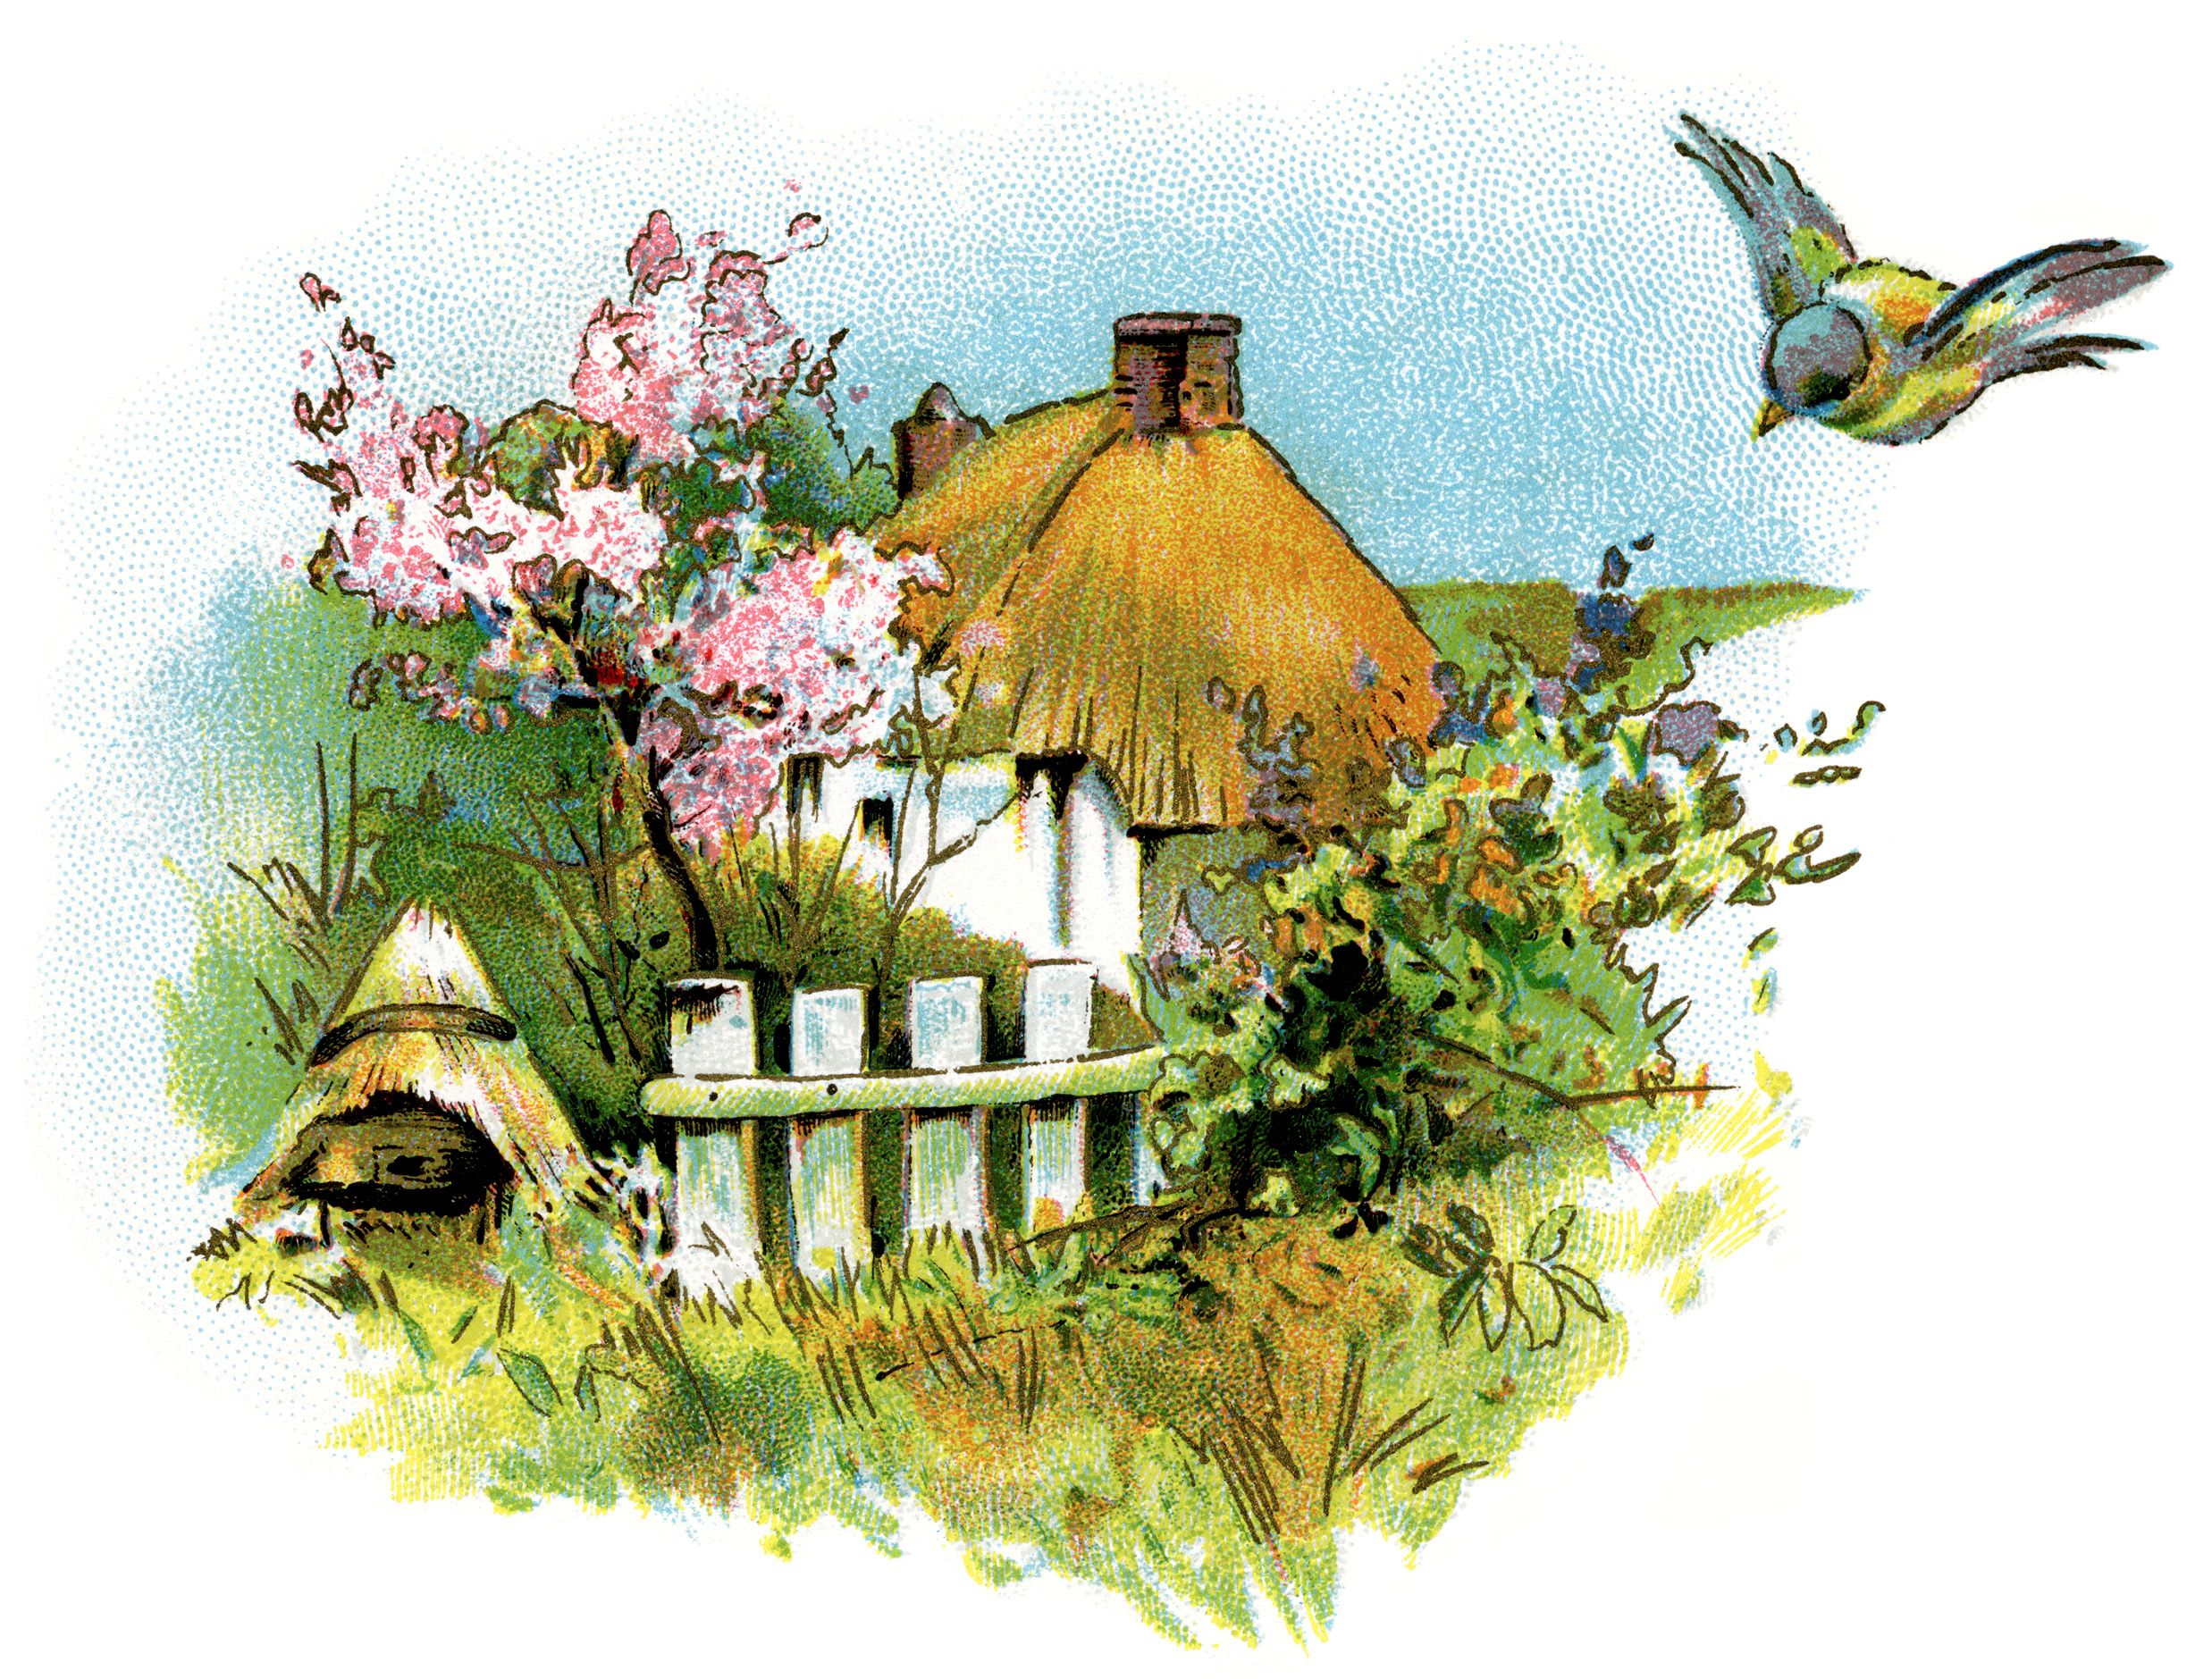 Vintage home clipart jpg black and white small country cottage clip art, thatched roof cottage ... jpg black and white